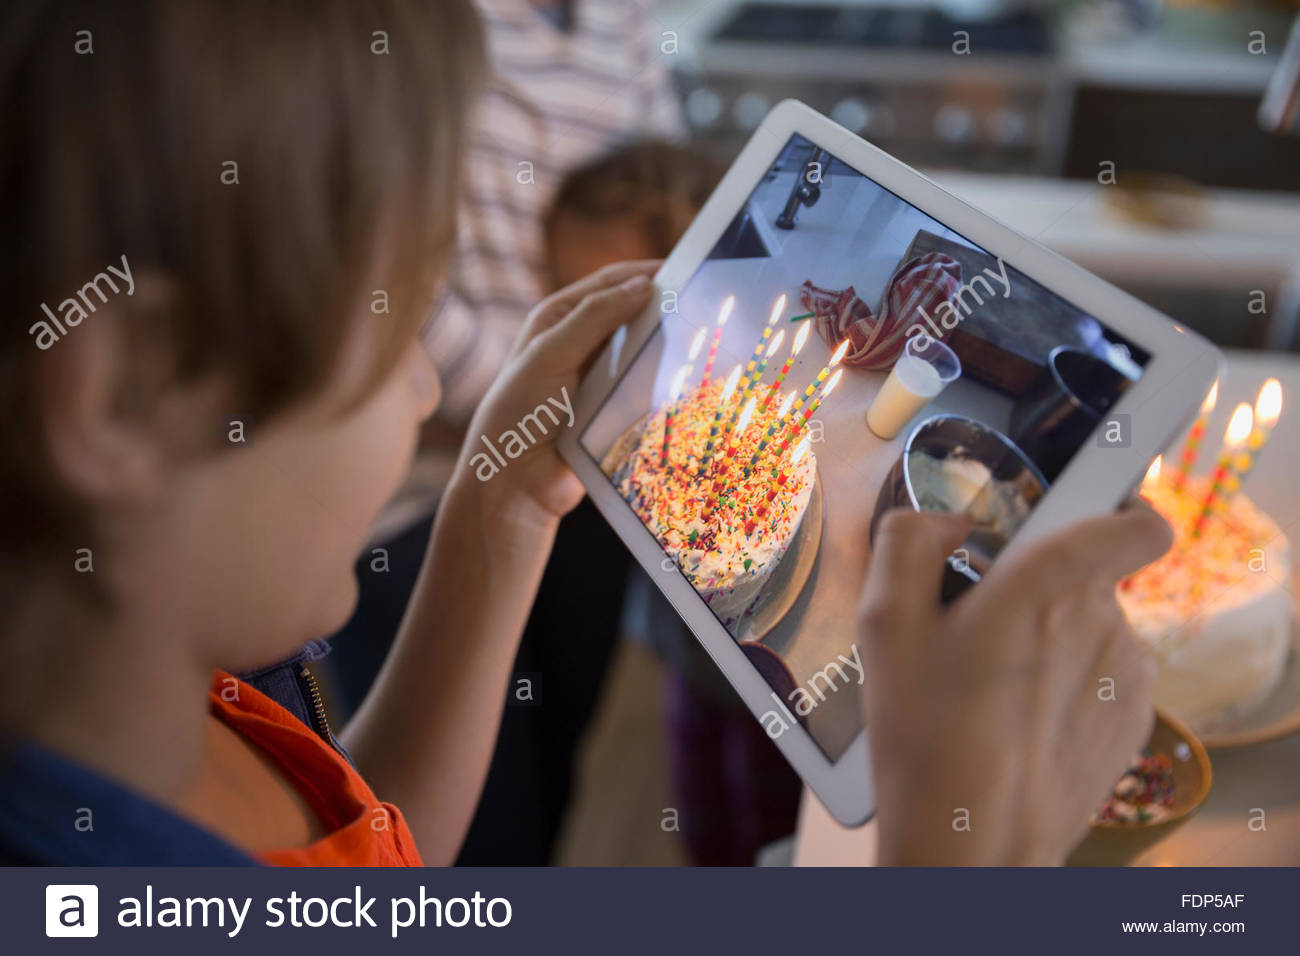 Boy photographing birthday cake with candles - Stock Image